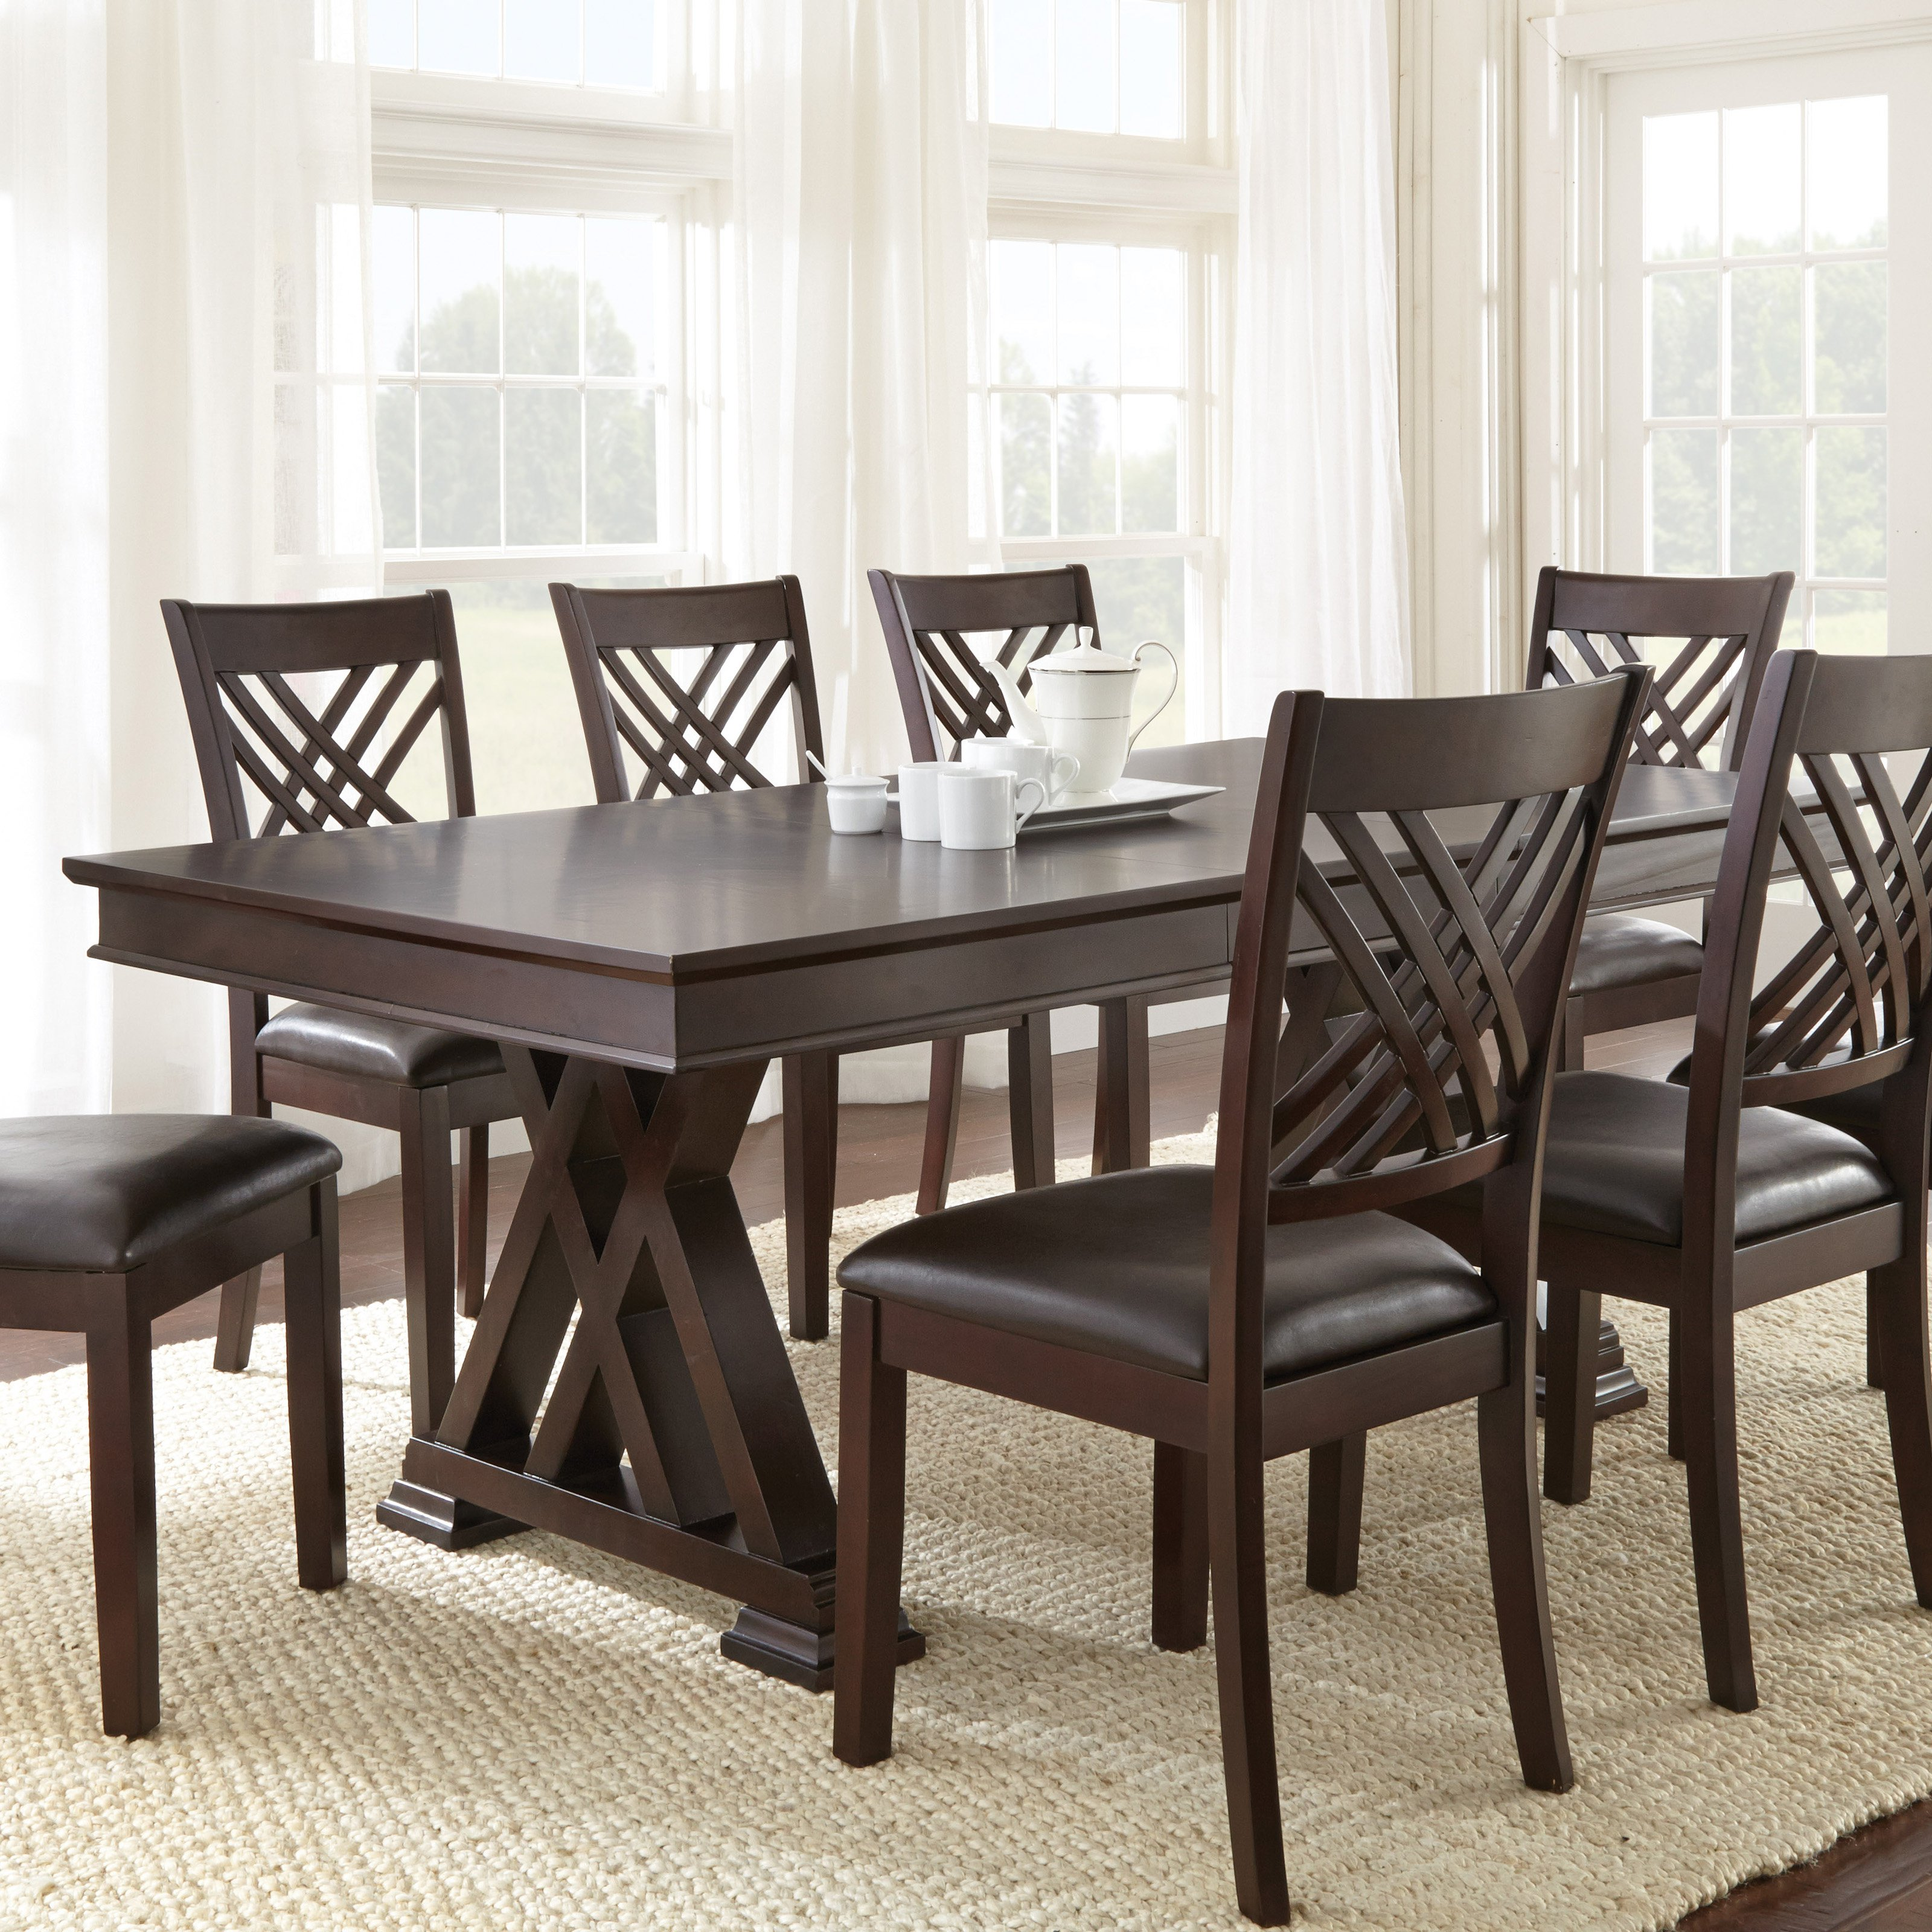 Steve Silver Adrian Dining Table by